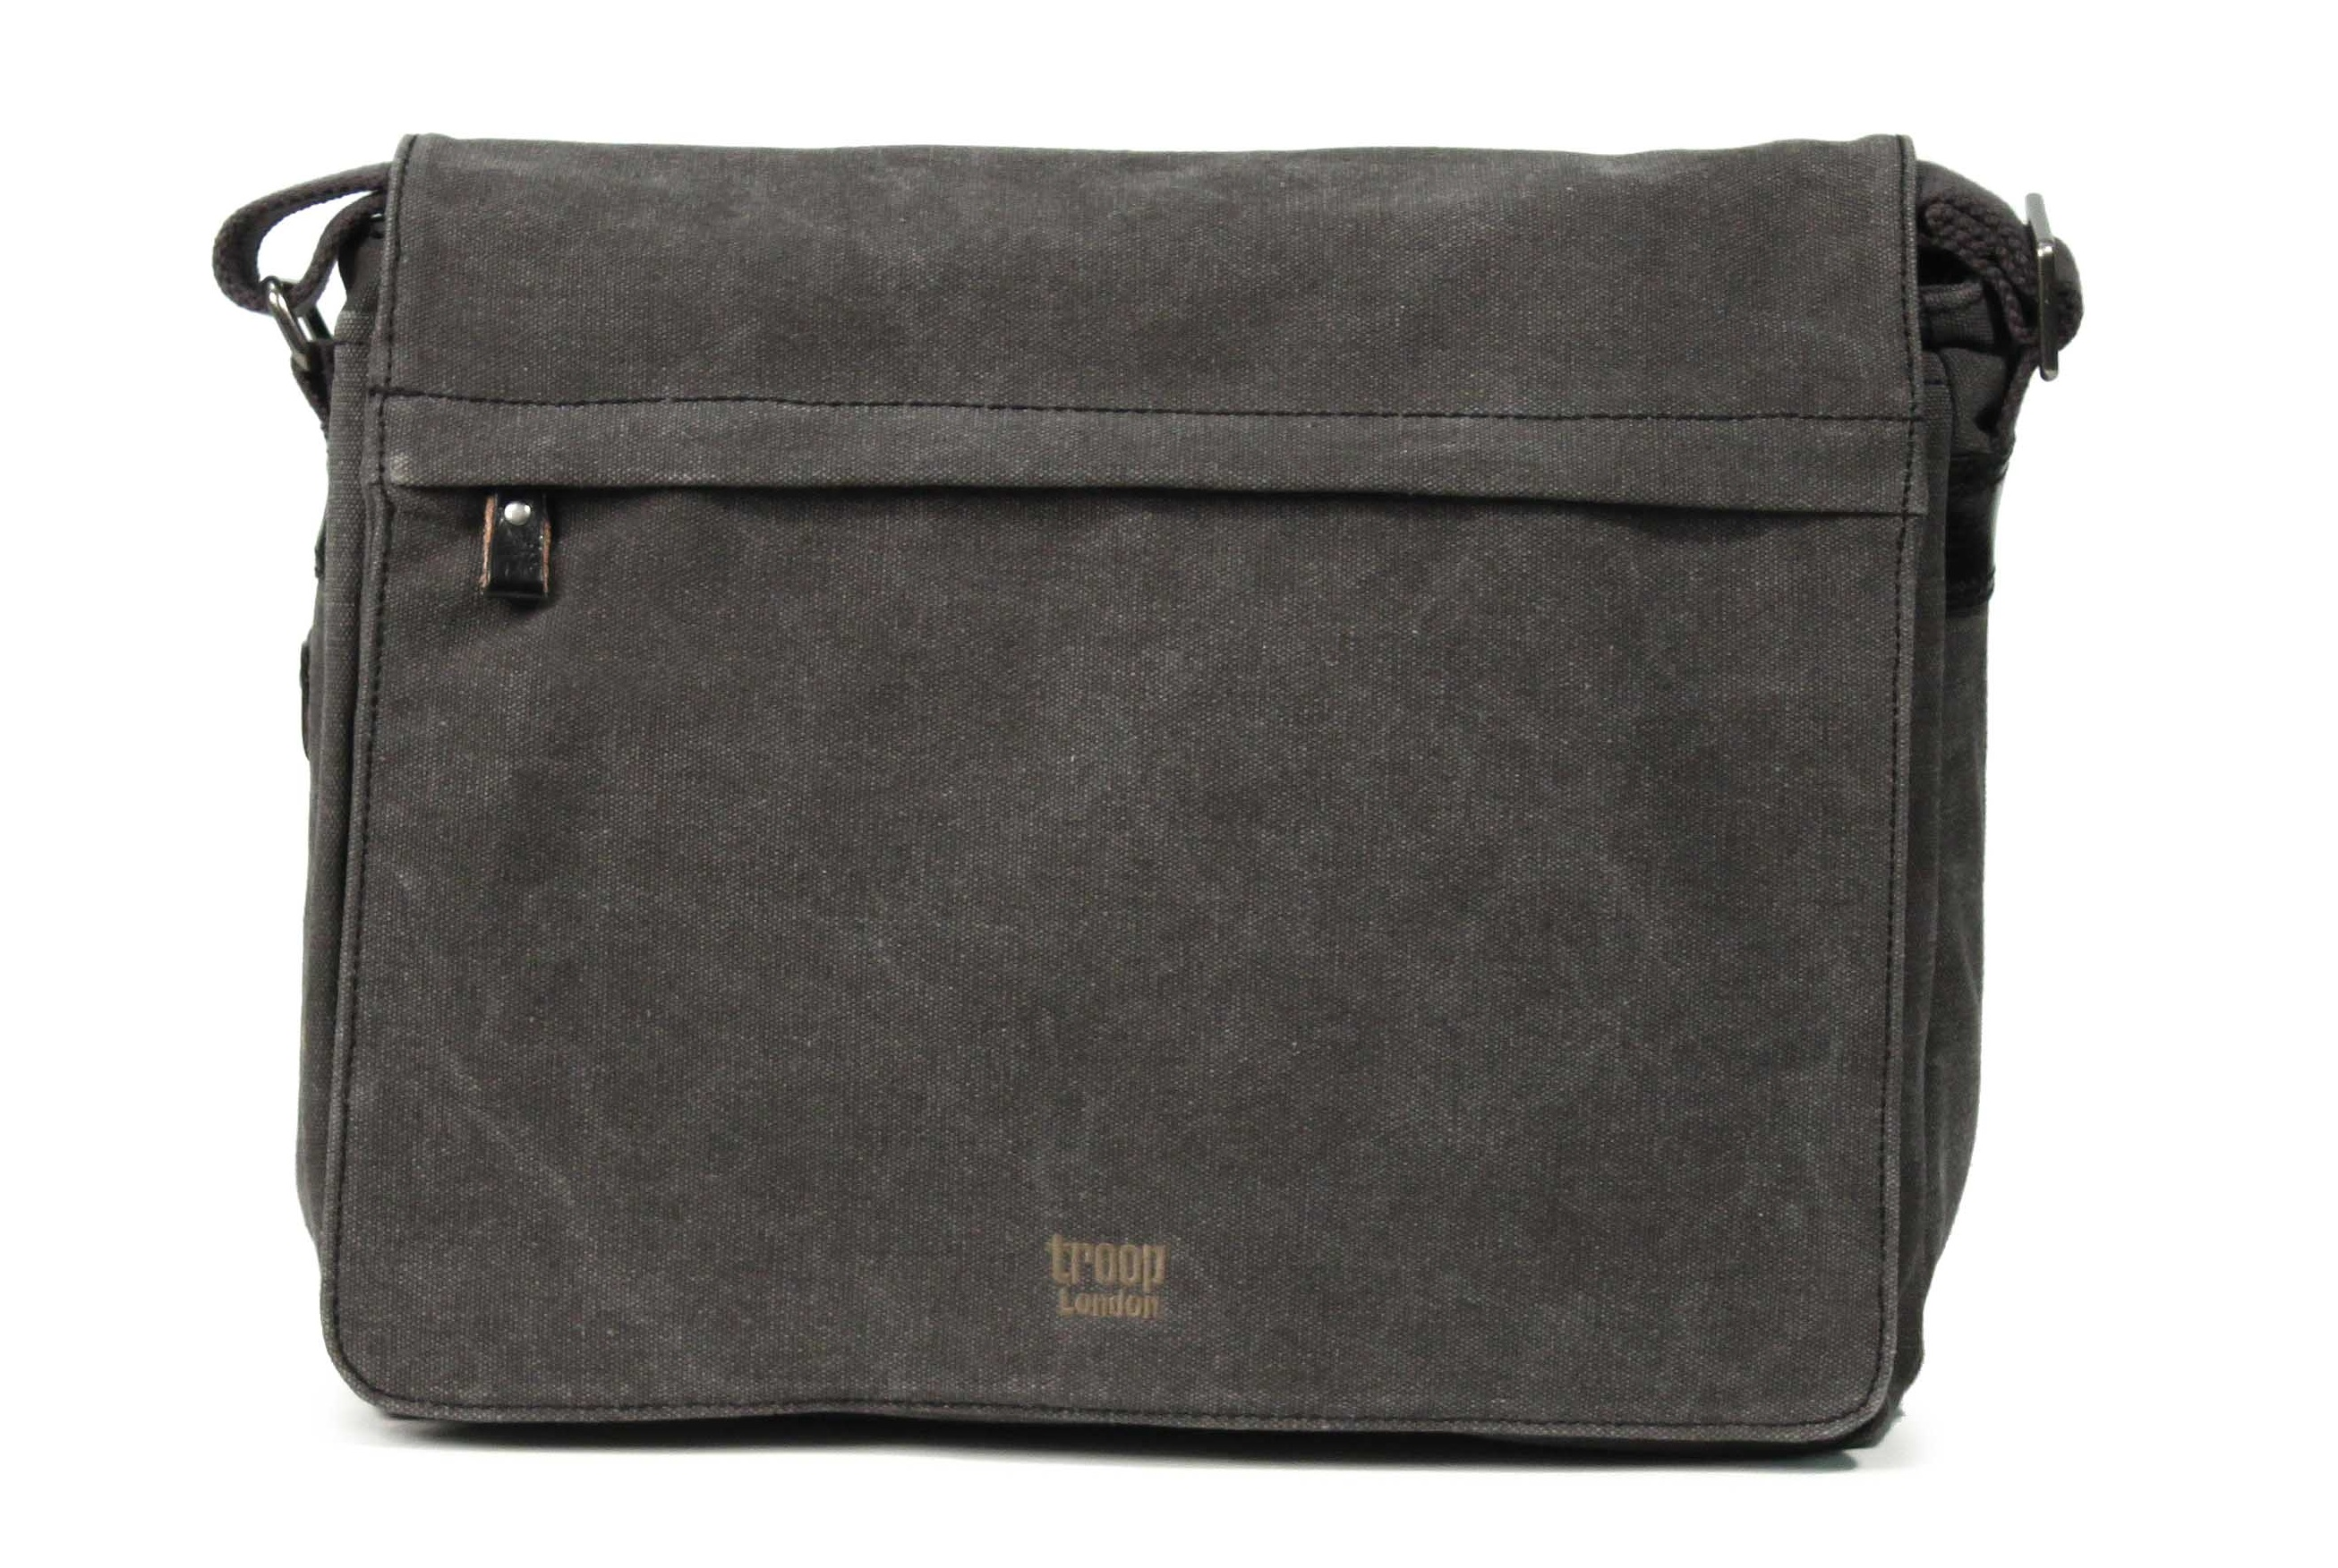 Troop London Canvas Messenger Shoulder Bag 16